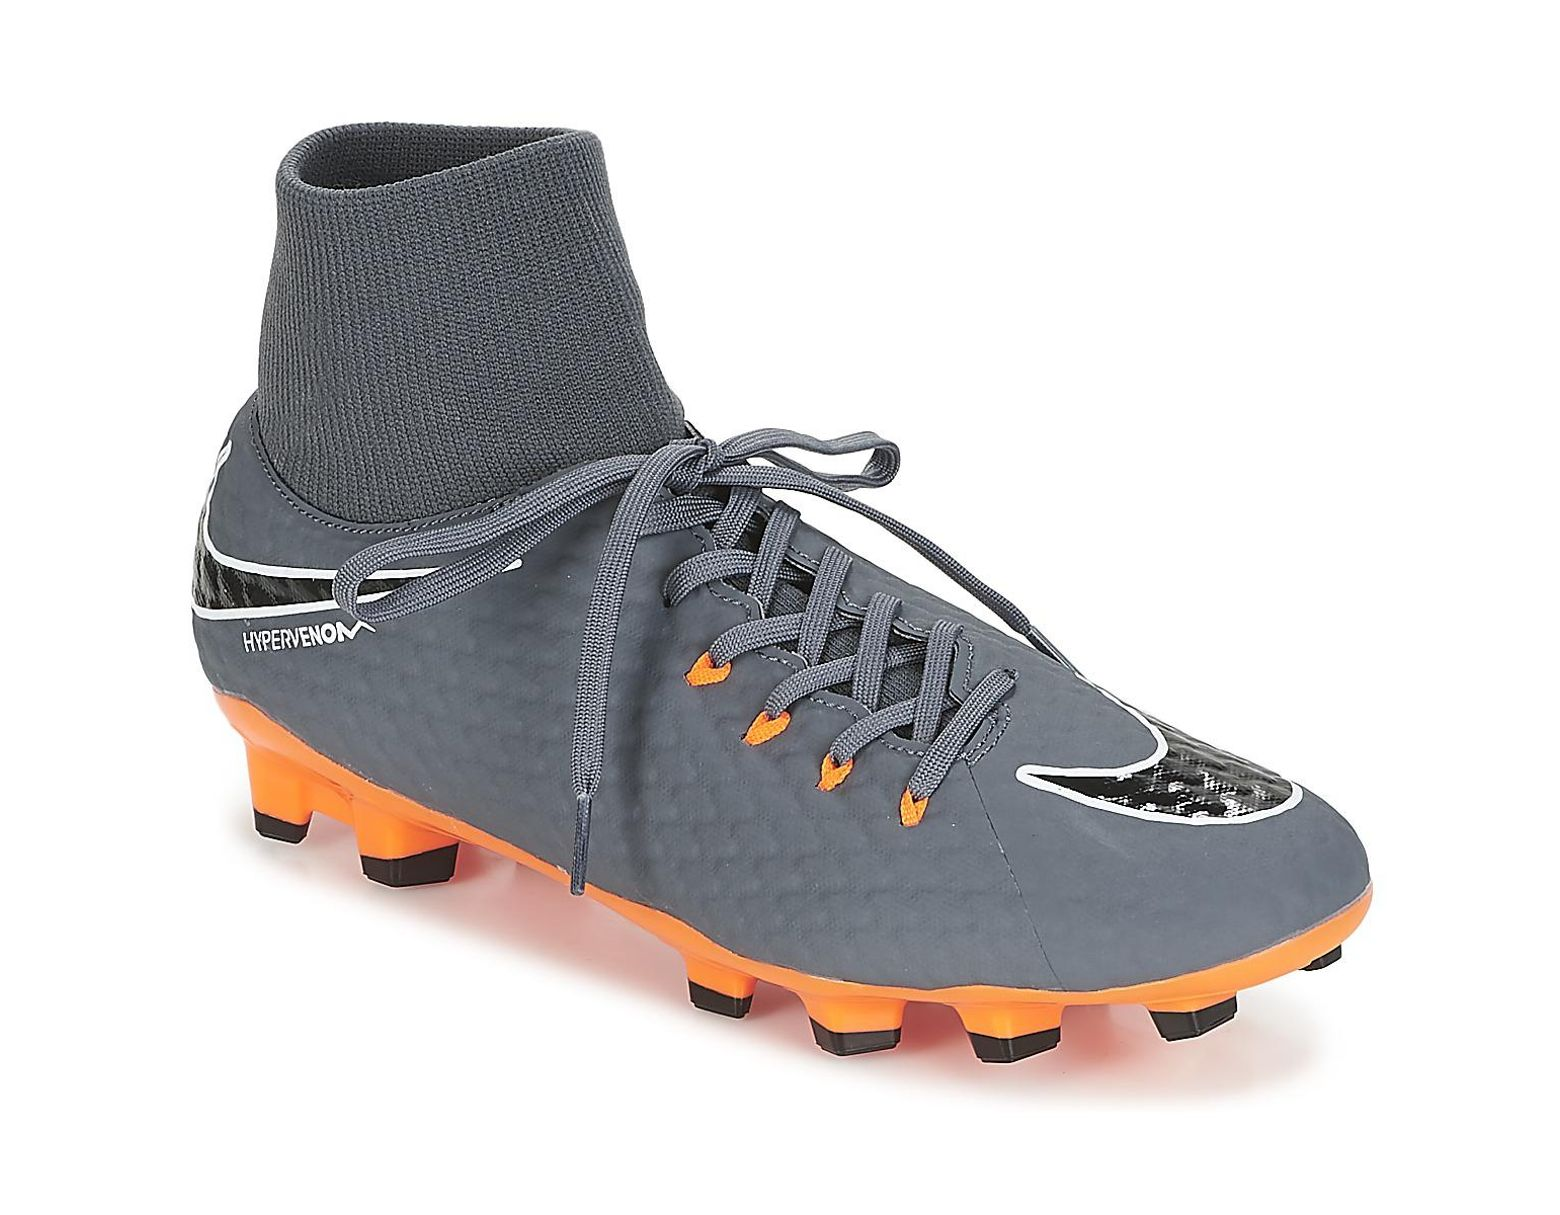 7bd76064b Nike Hypervenom Phantom 3 Academy Dynamic Fit Firm Ground Men's Football  Boots In Grey in Gray for Men - Lyst